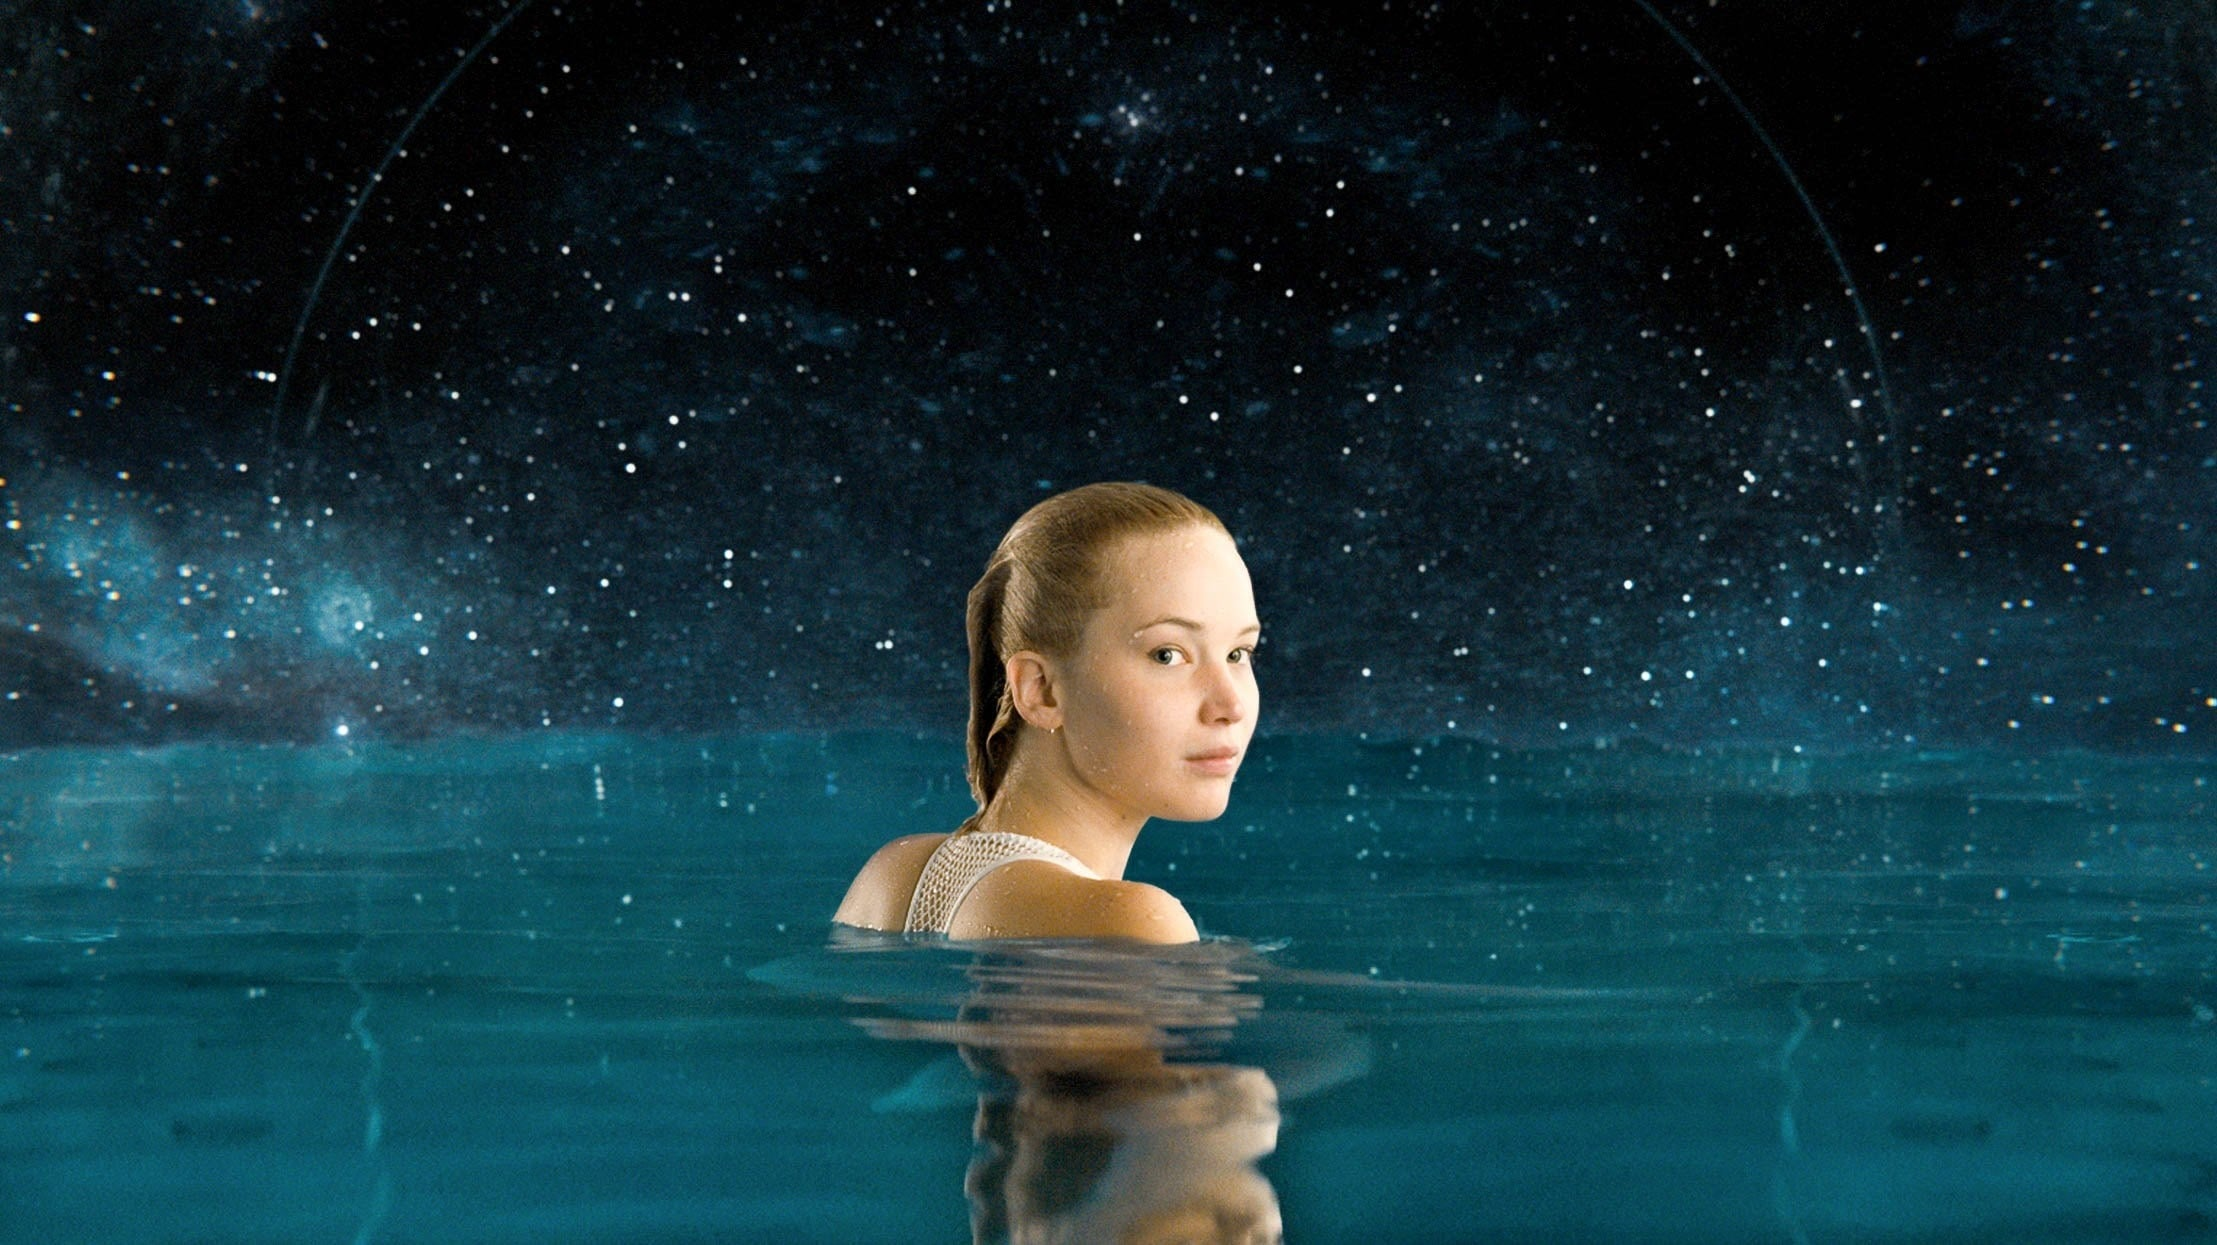 full free watch passengers 2016 online full movies. Black Bedroom Furniture Sets. Home Design Ideas